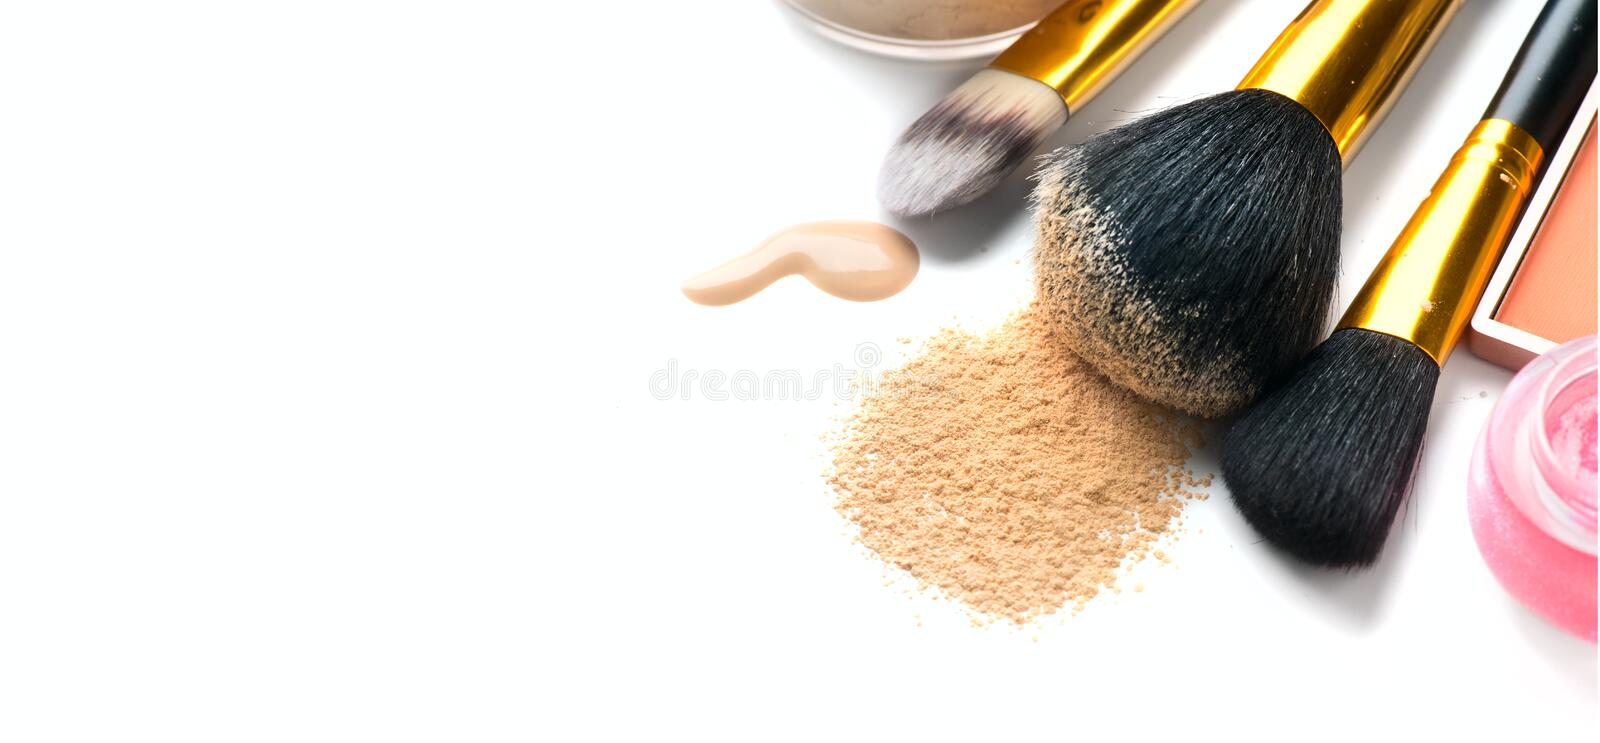 Cosmetic liquid foundation or cream, loose face powder, various brushes for apply makeup. Make up concealer smear and powder stock photos